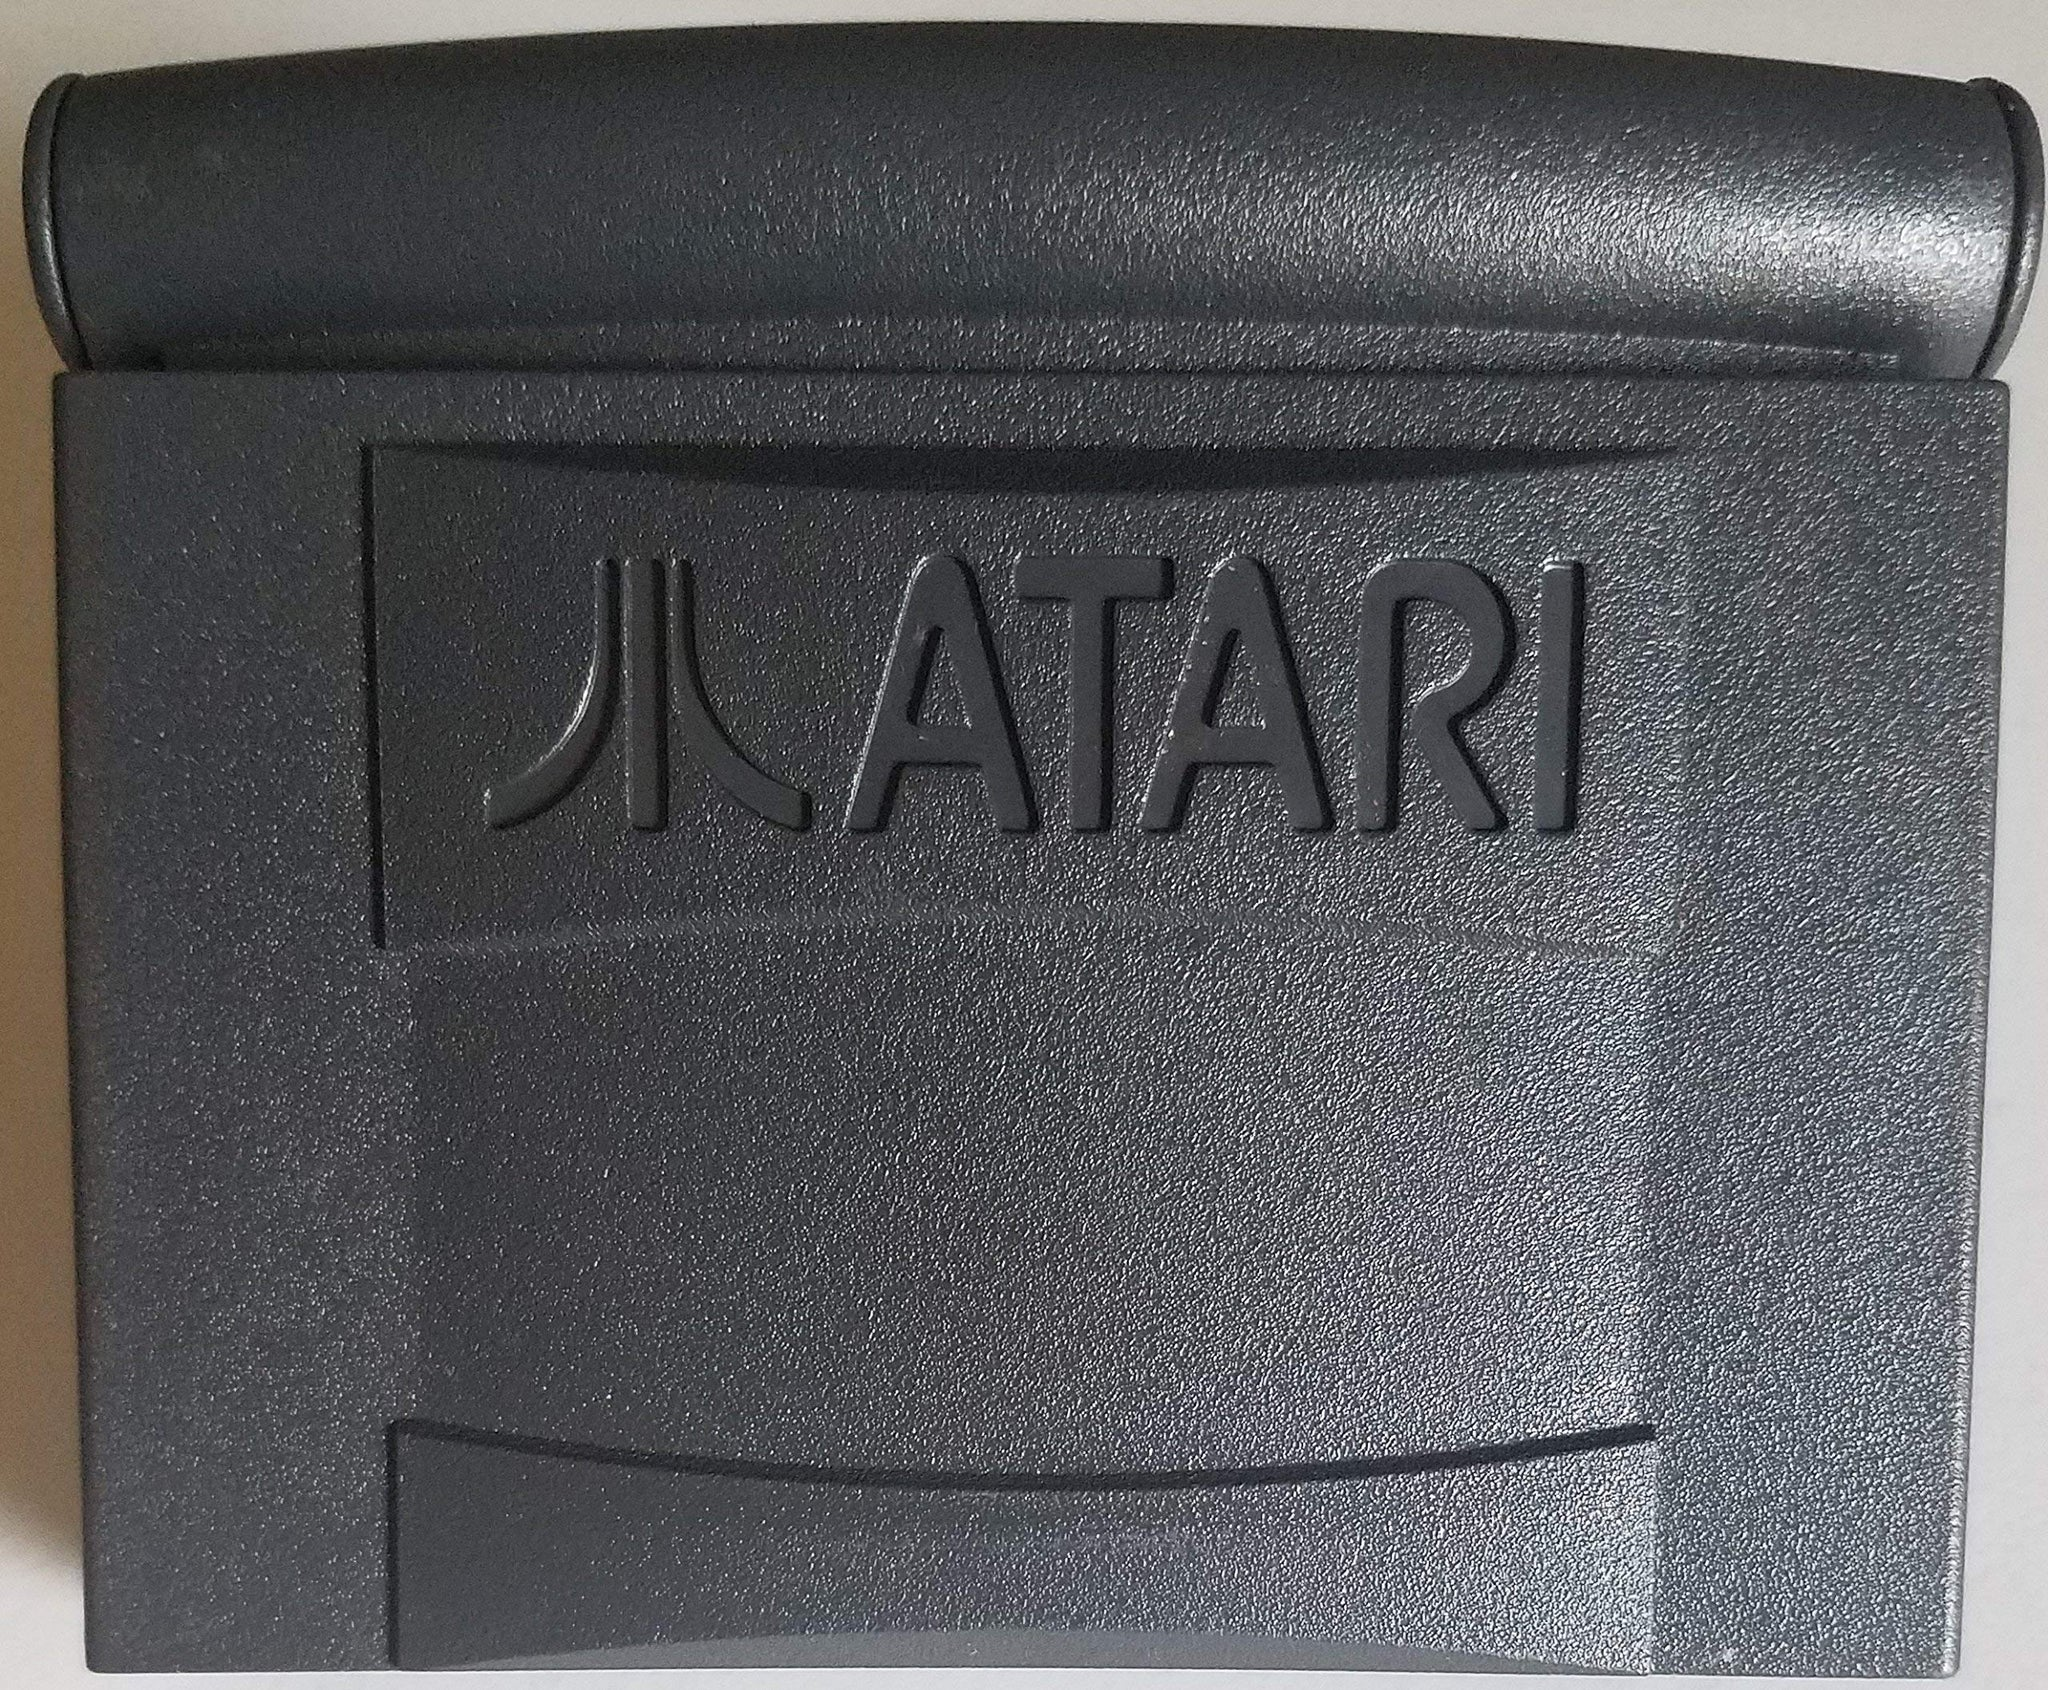 Cartridge Commission for the Atari Jaguar